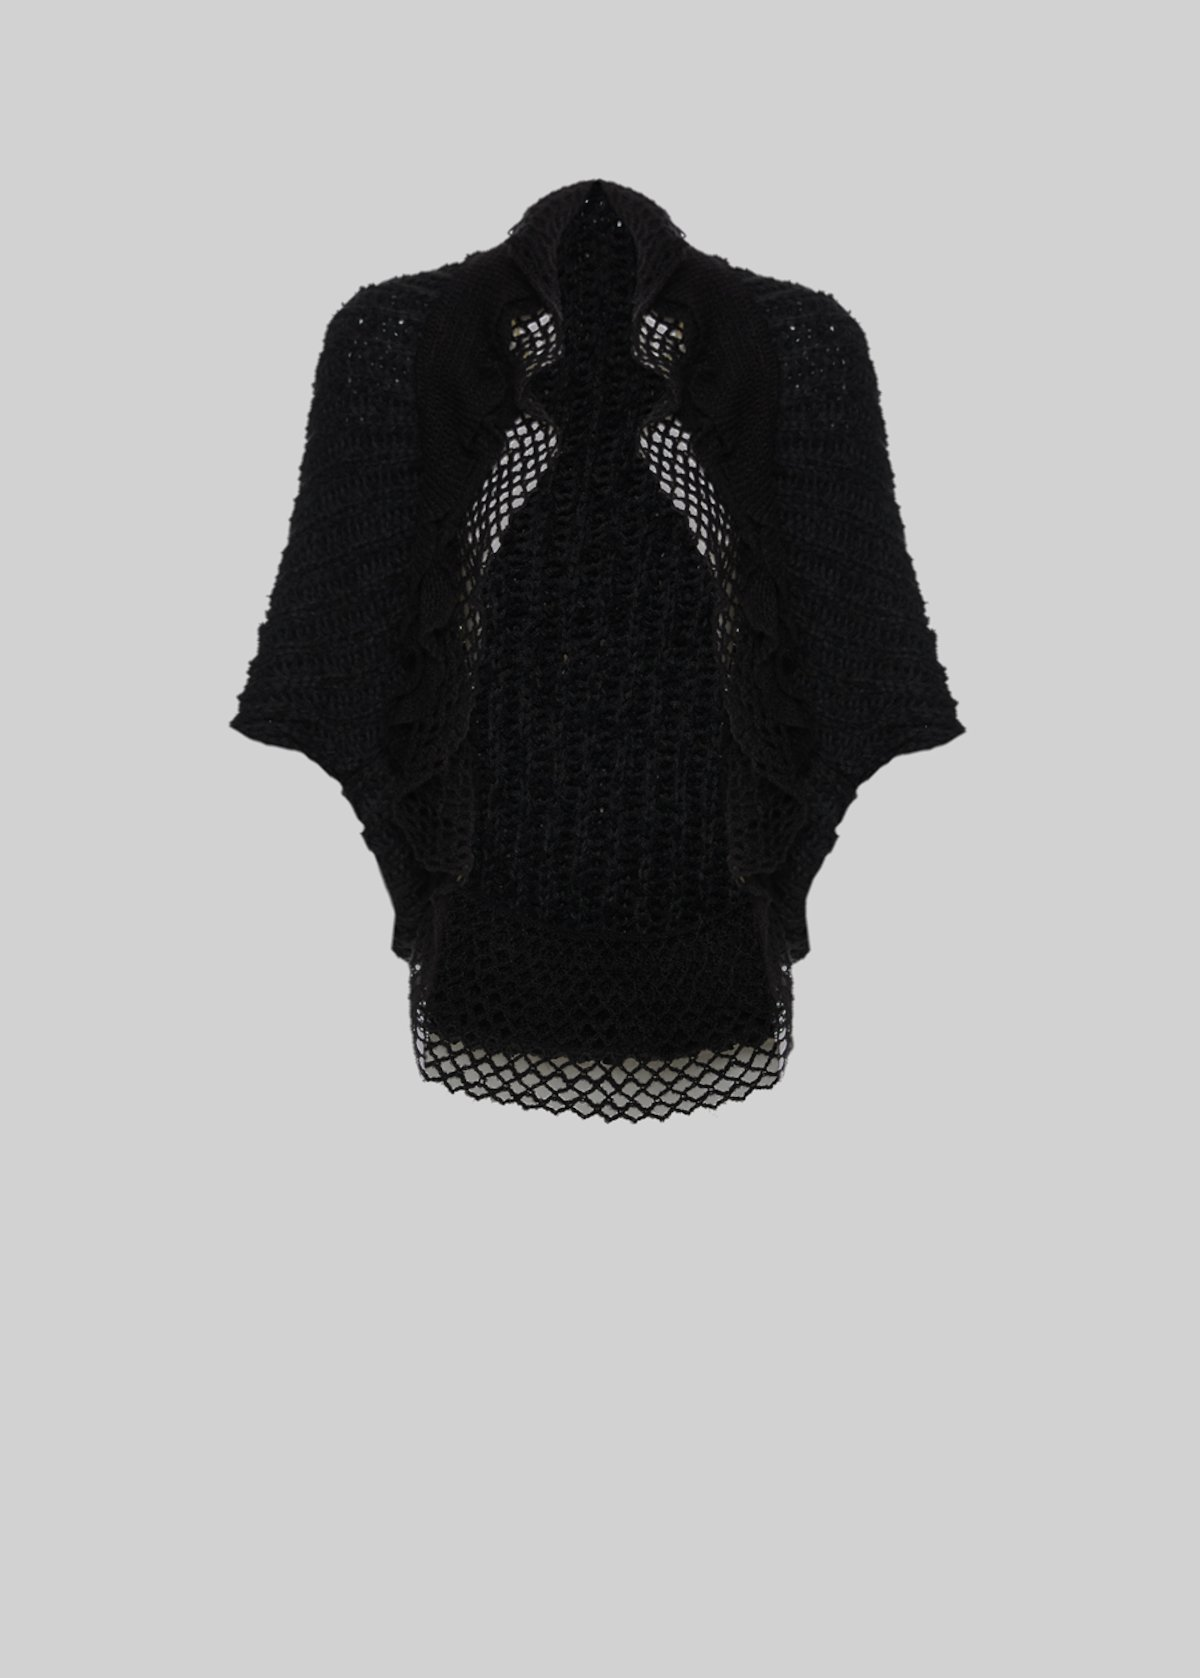 Clelia knit shrug with ruffles detail